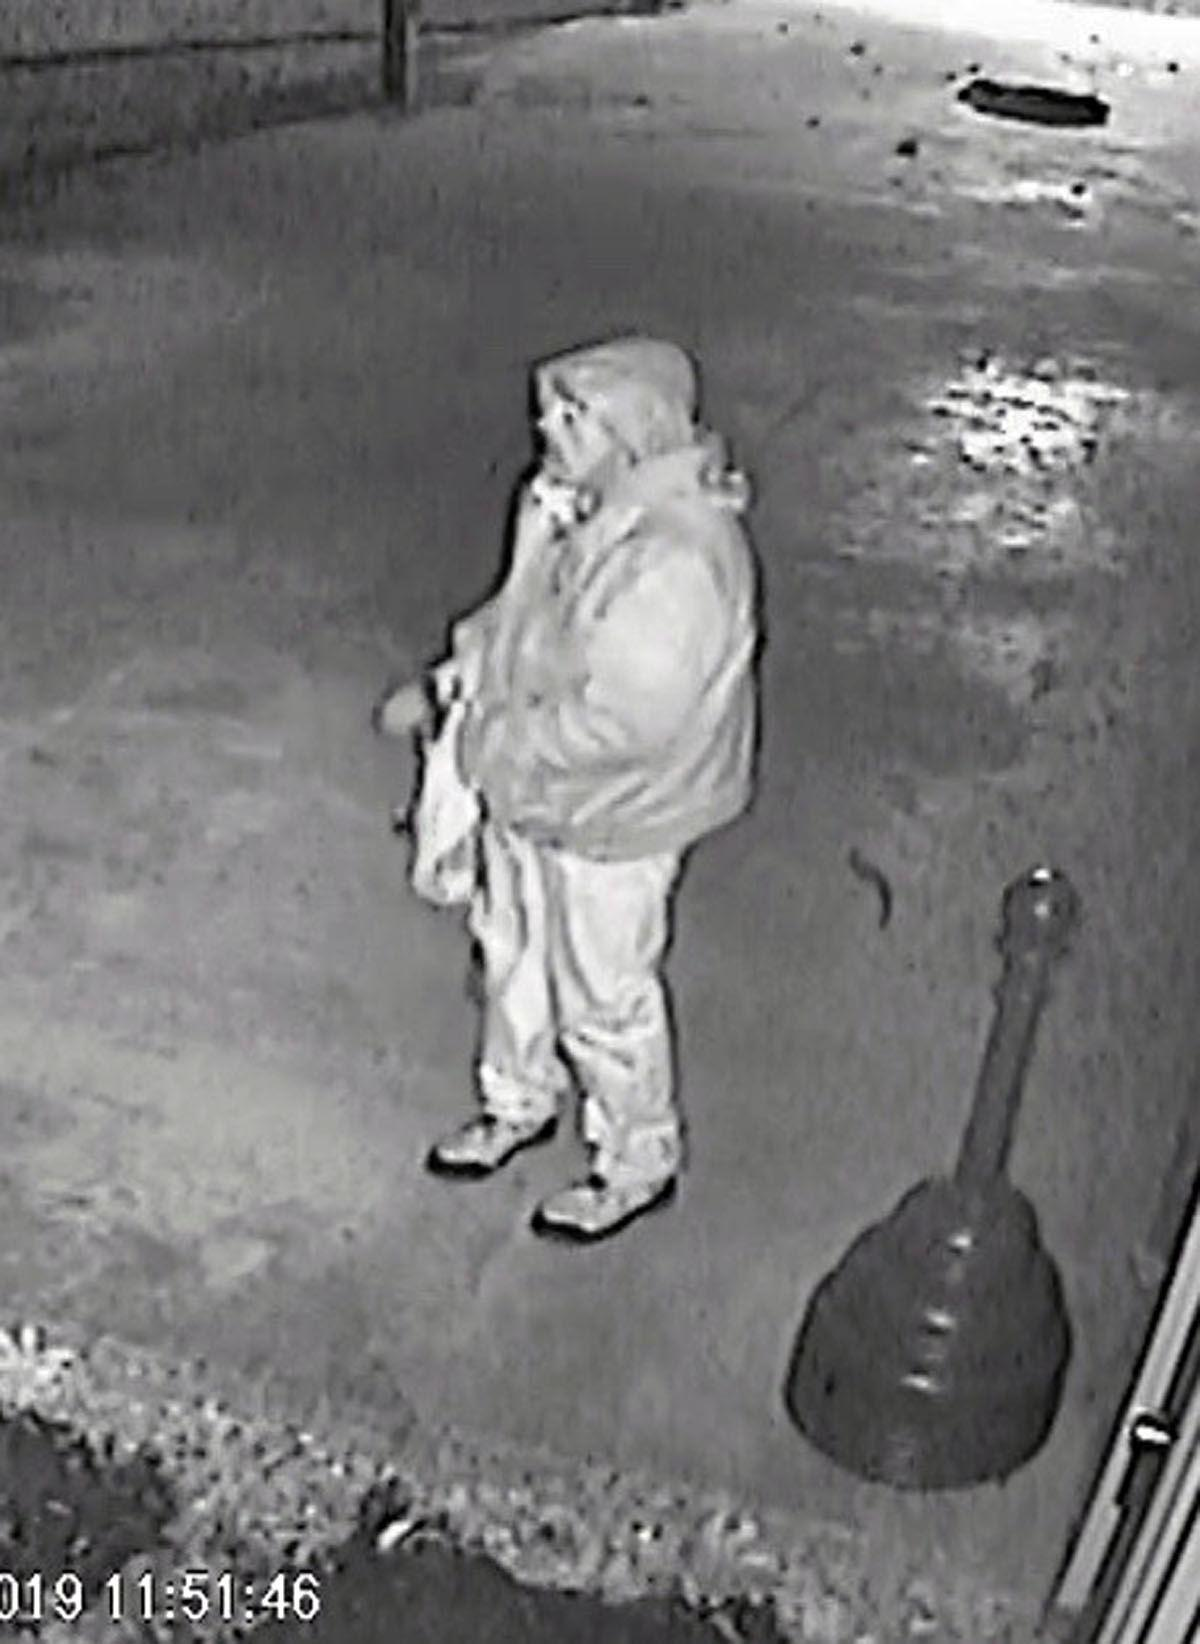 Man wanted for furniture store break-in, theft